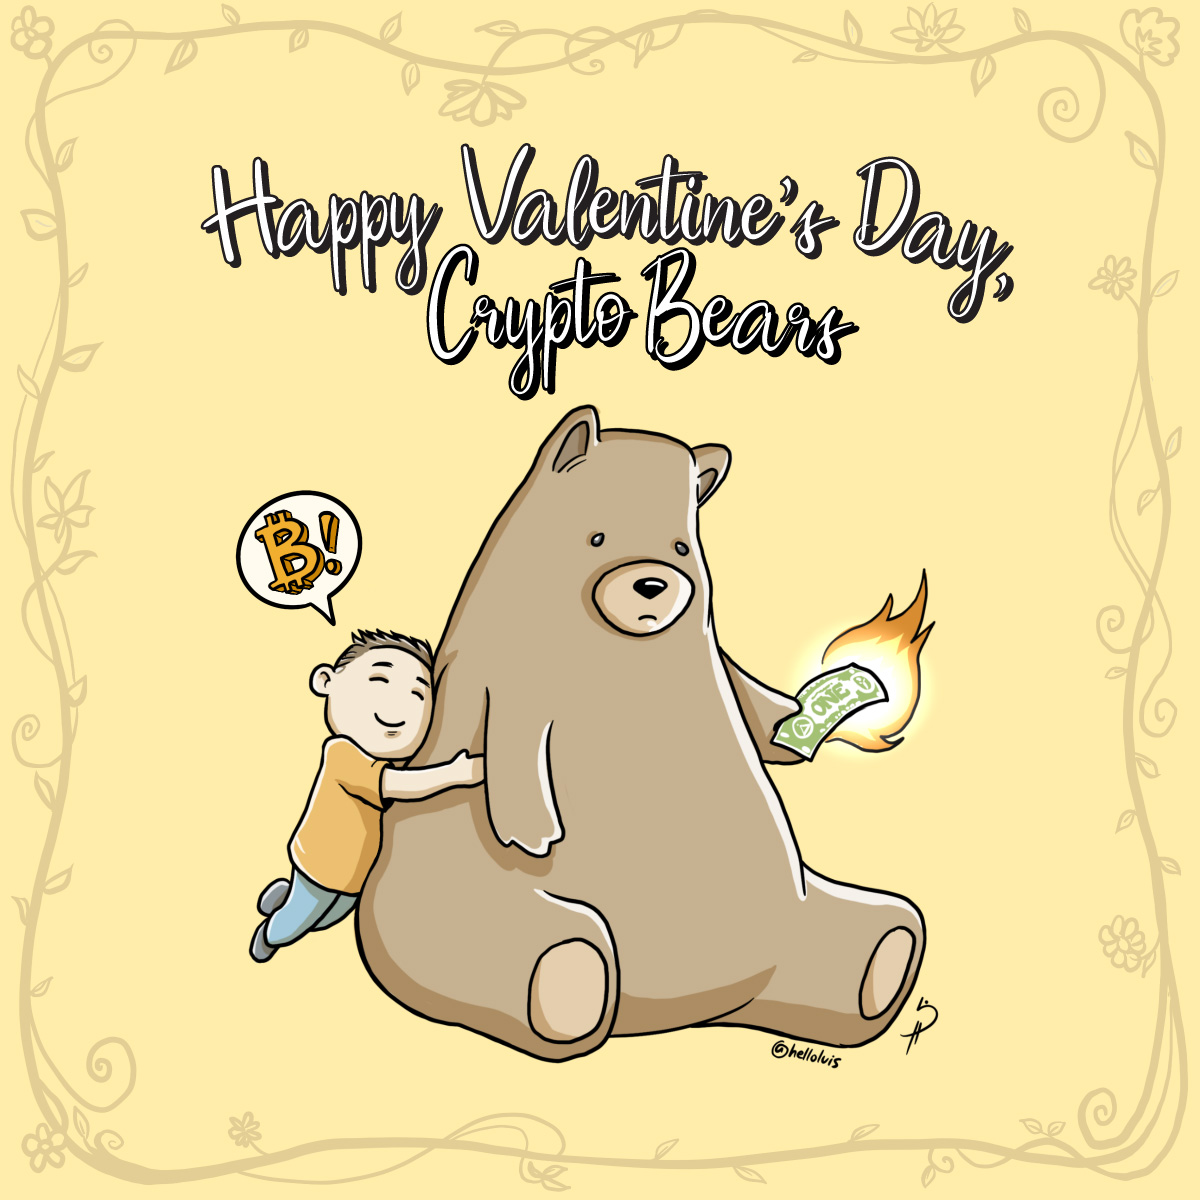 Happy Valentines Day, Crypto Bears! A V-day cartoon by Cryptopop